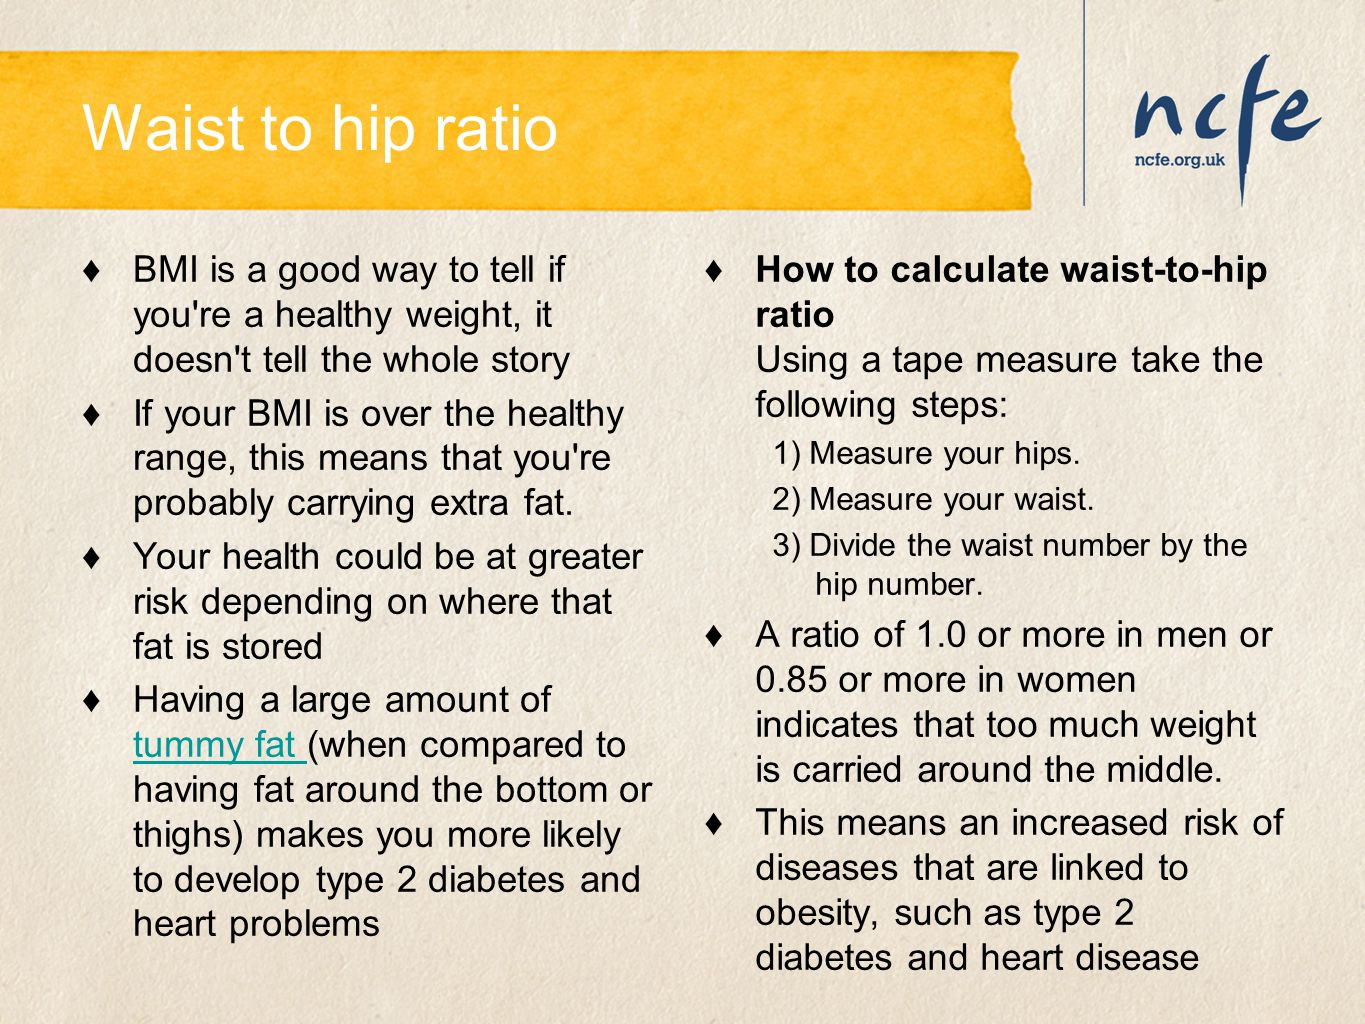 Waist to hip ratio BMI is a good way to tell if you re a healthy weight, it doesn t tell the whole story.